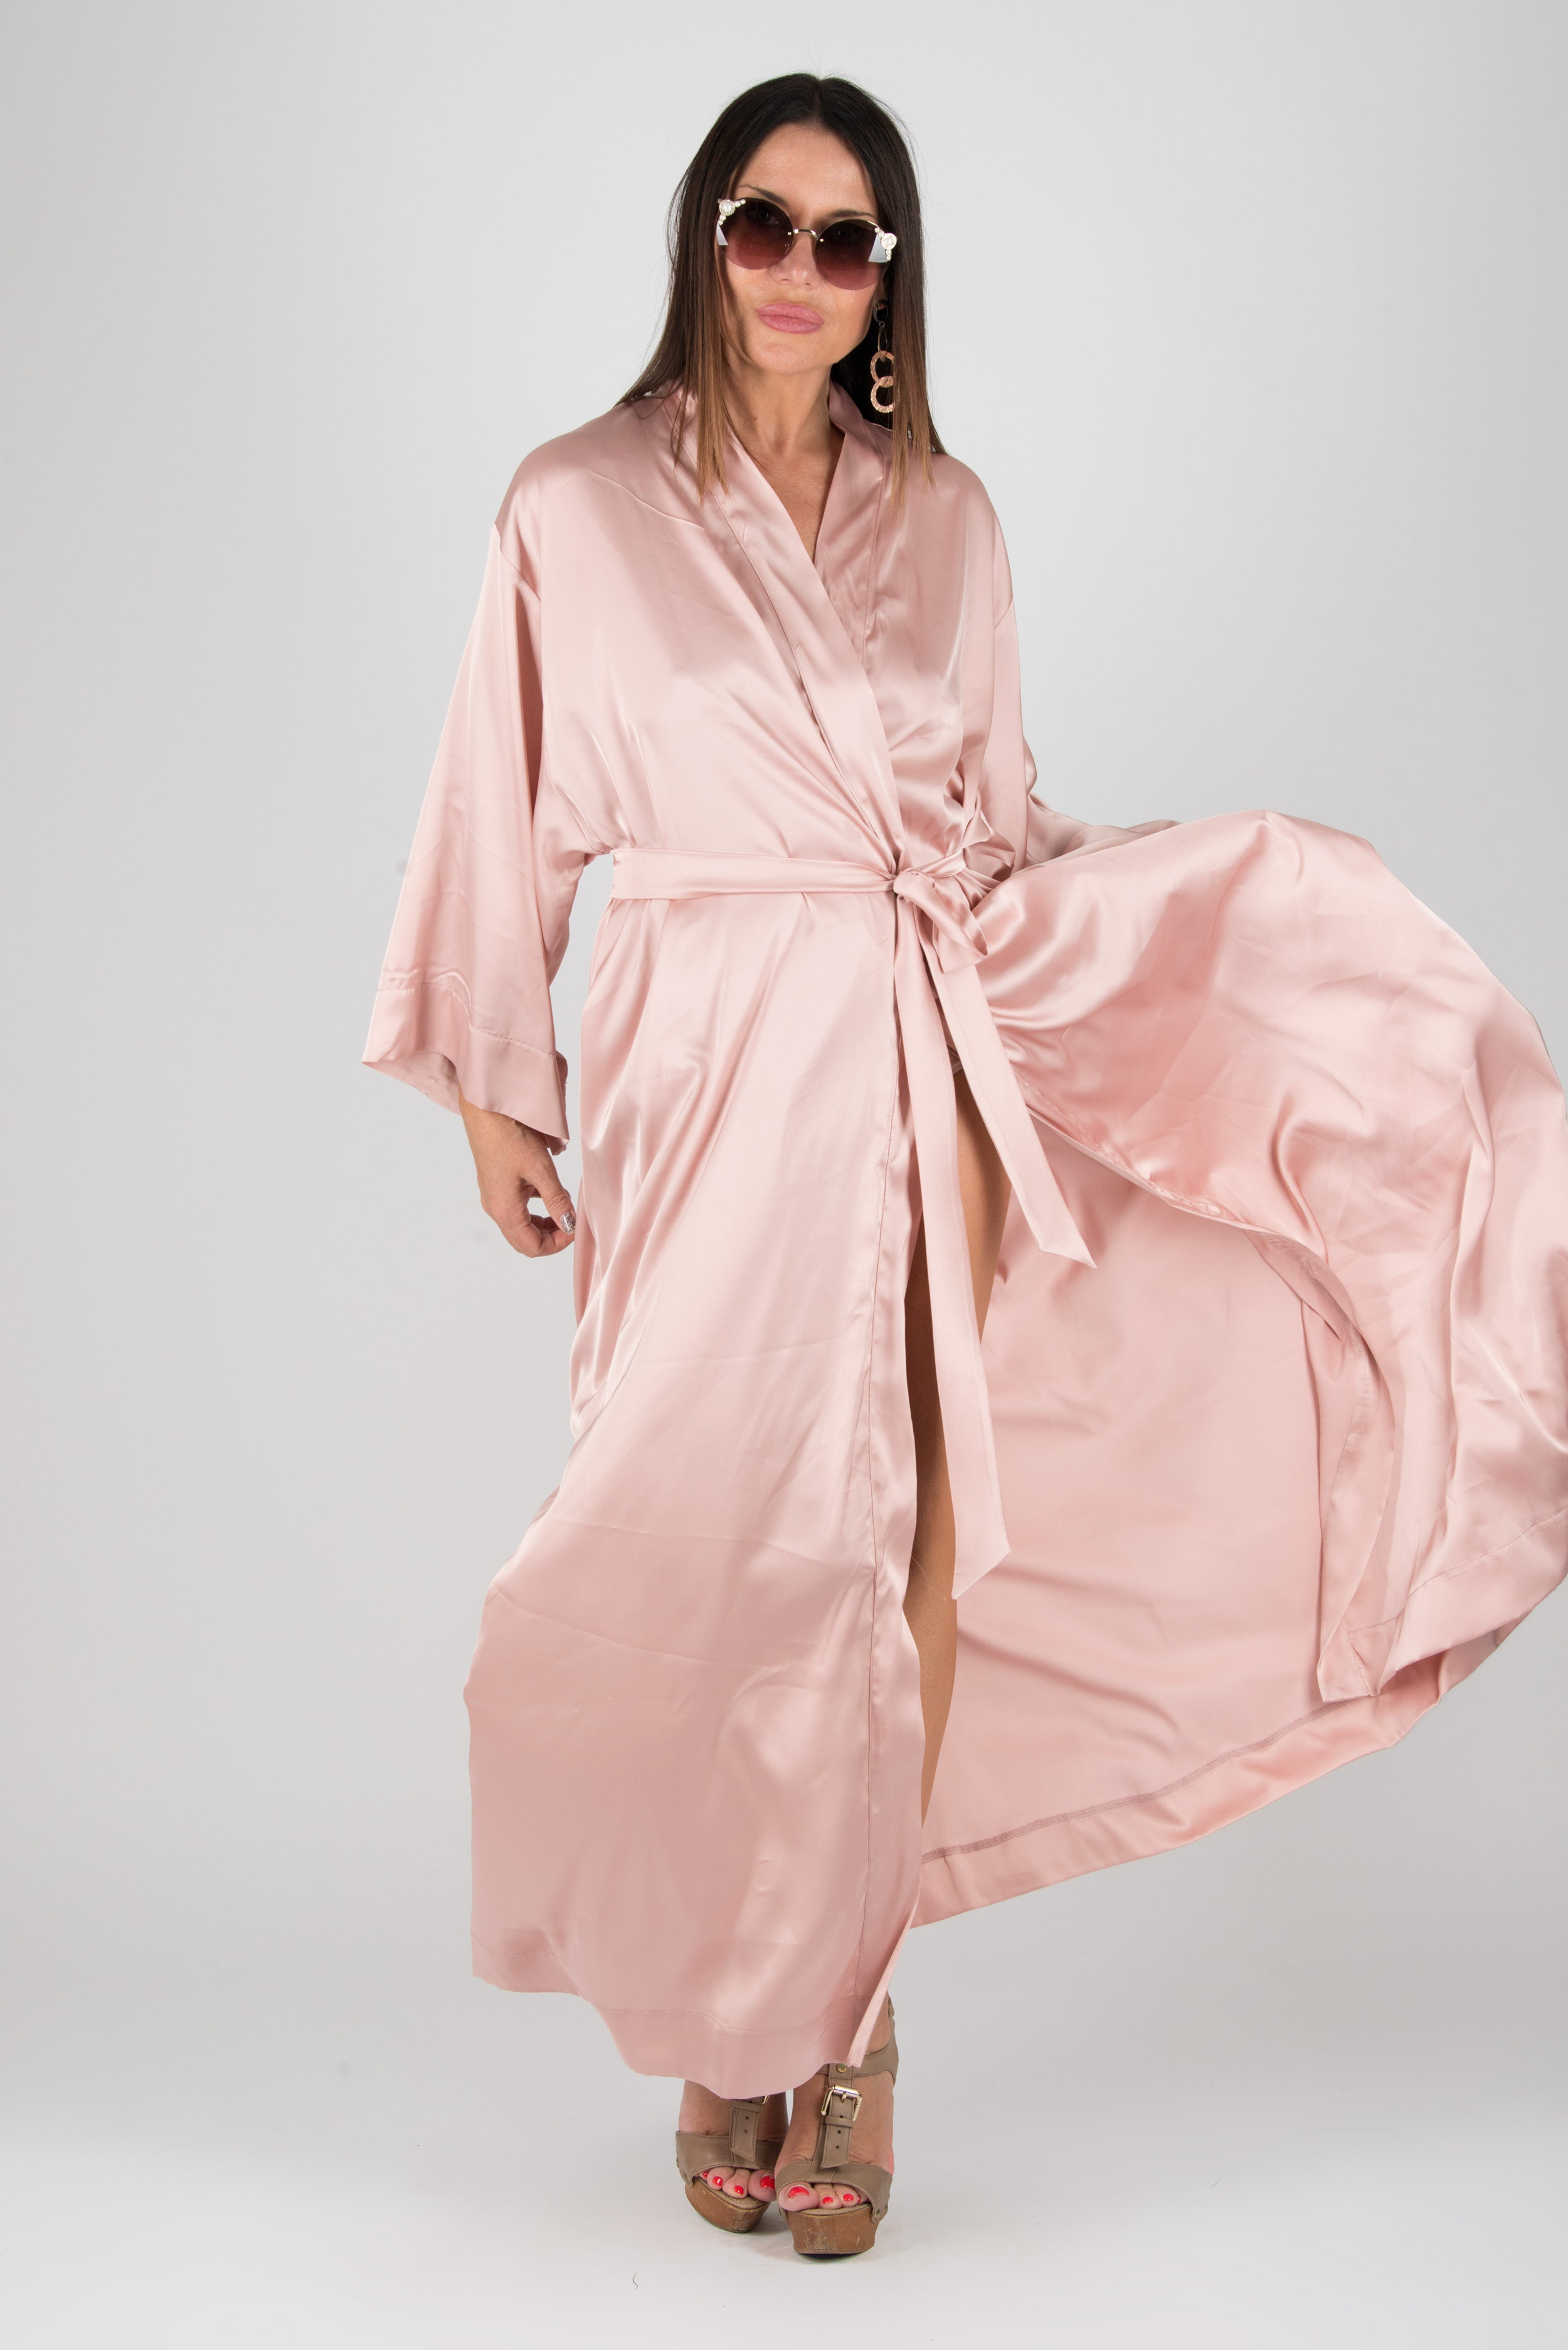 Peach Kimono Bathrobe Sexy Home Clothes, Maxi Kaftan, Kaftans Clothing